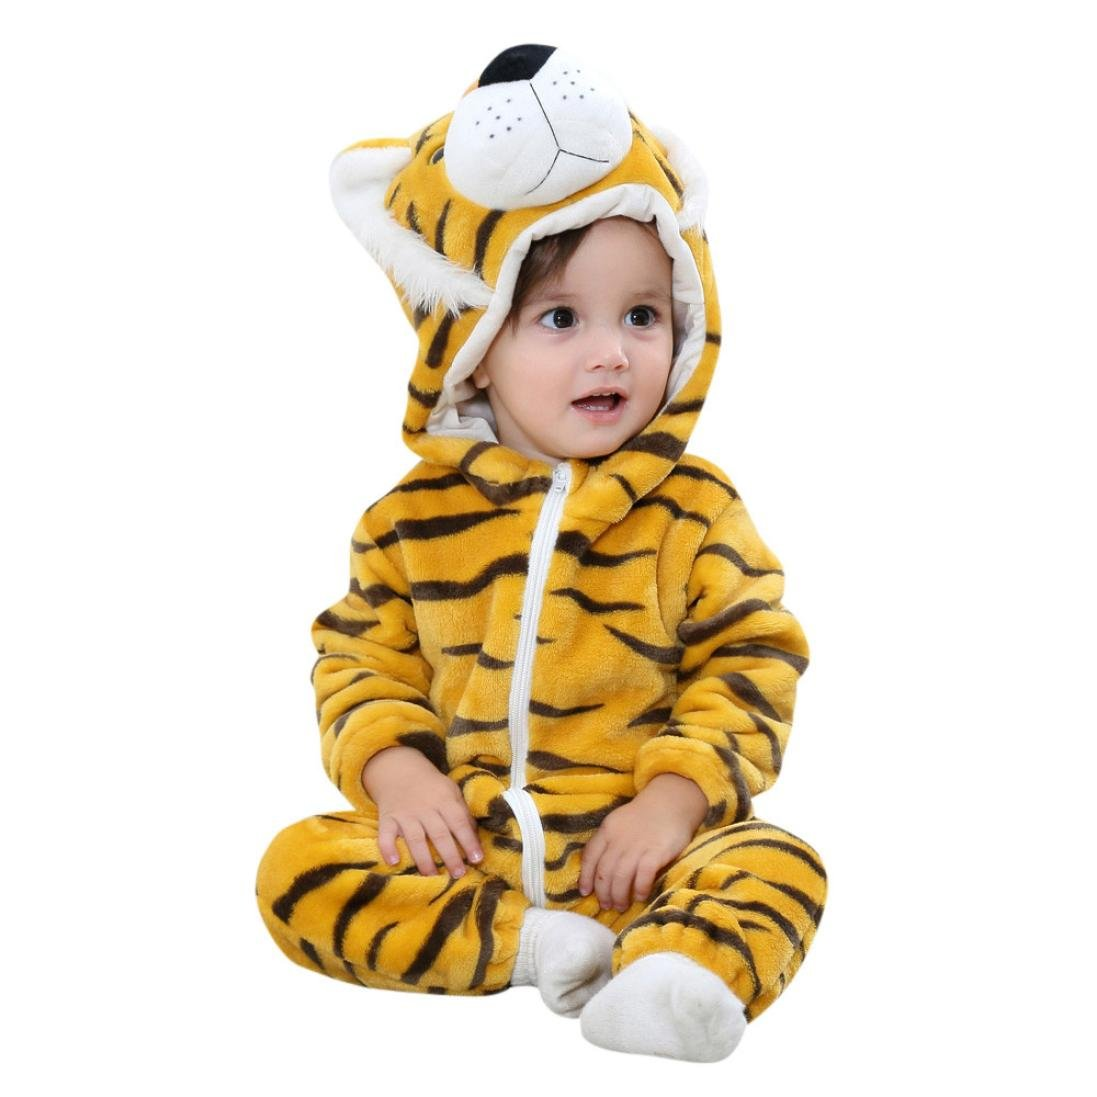 96e37af8d79e Amazon.com   Coohole Toddler Baby Boys Girls Animal Cartoon Pullover Hoodie Rompers  Outfits   Sports   Outdoors